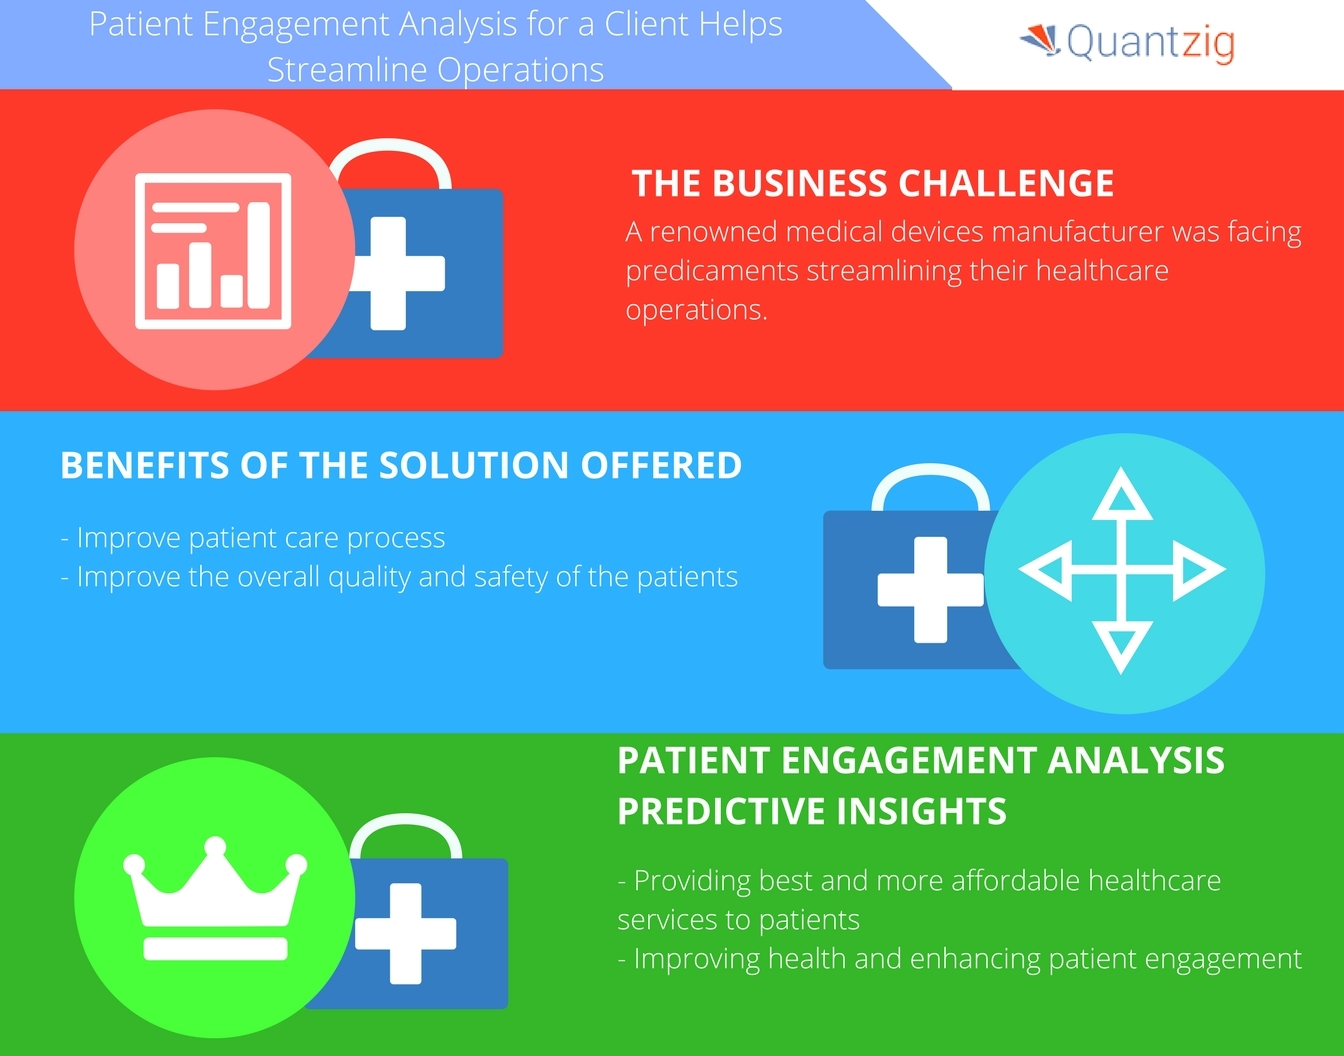 Patient Engagement Analysis Aids in Streamlining Operations for ...